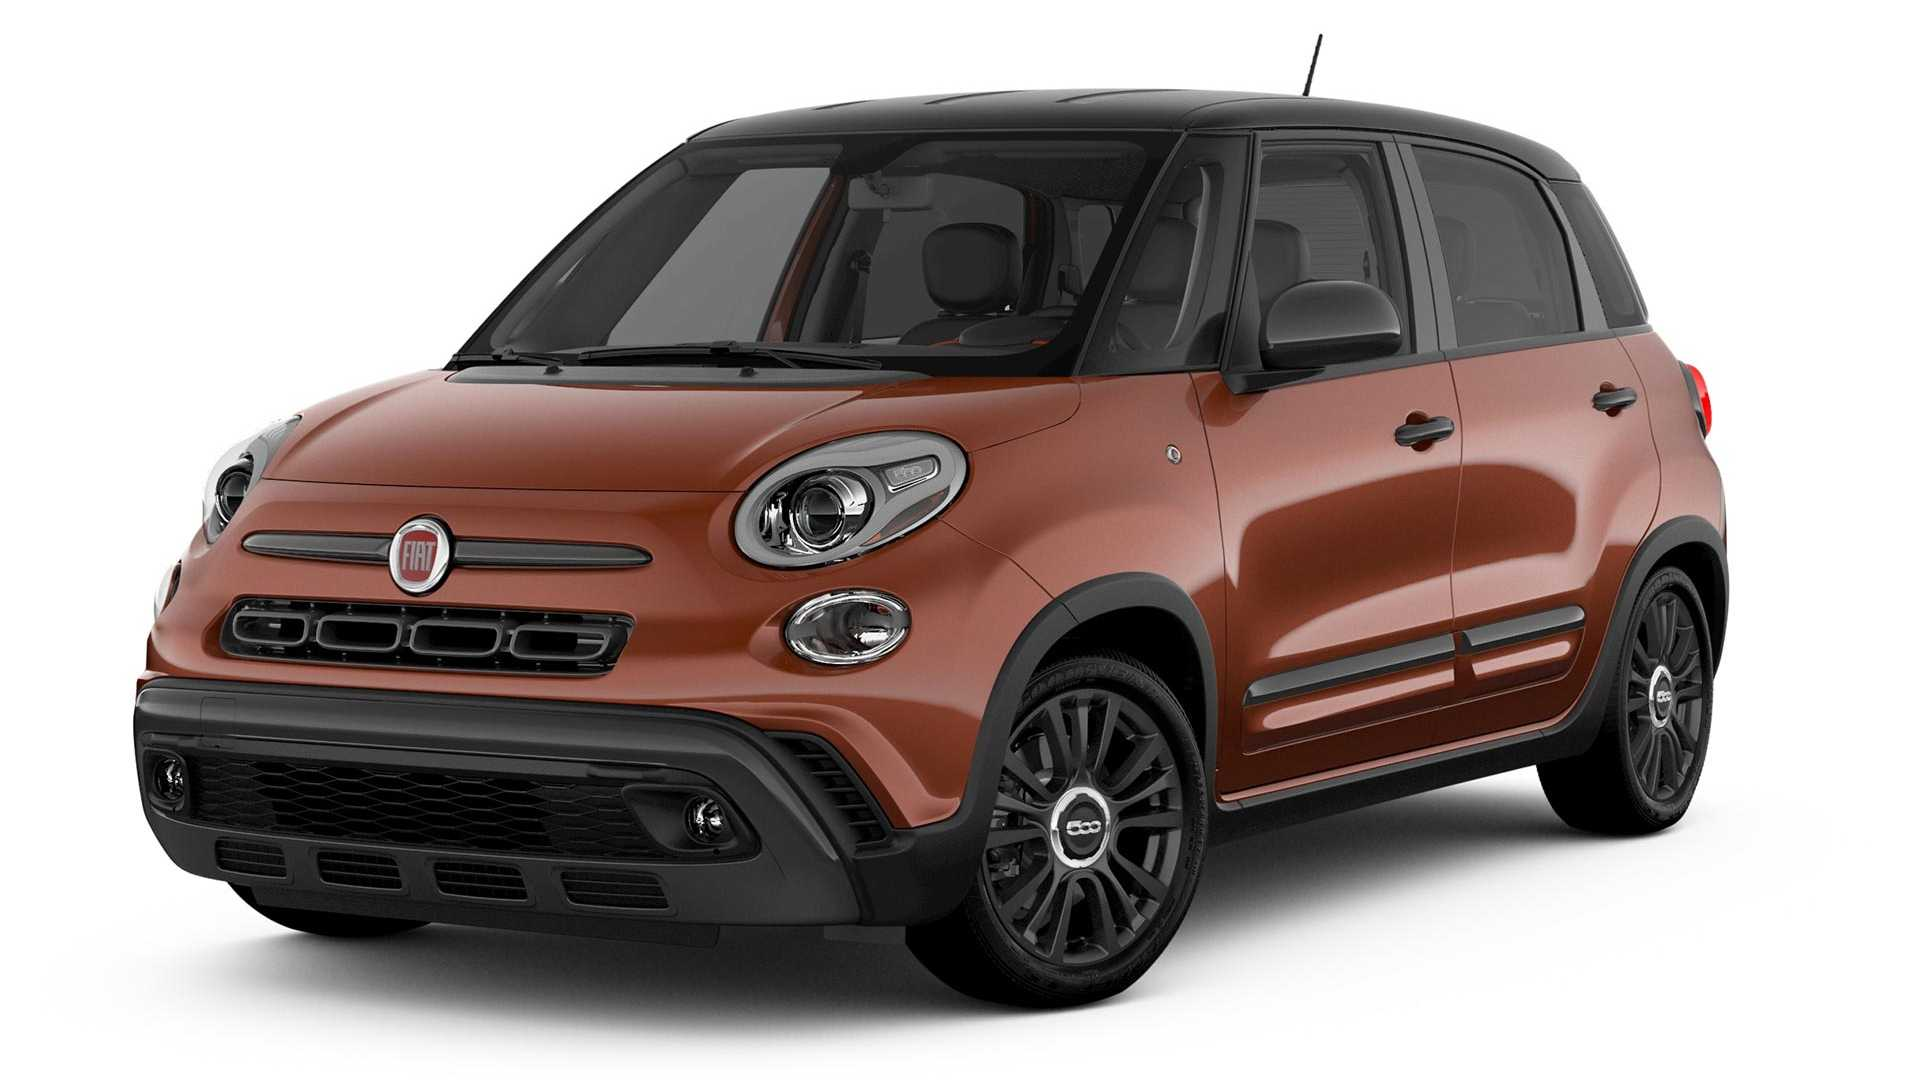 2019 Fiat 500l Urbana Edition Debuts With More Goodies